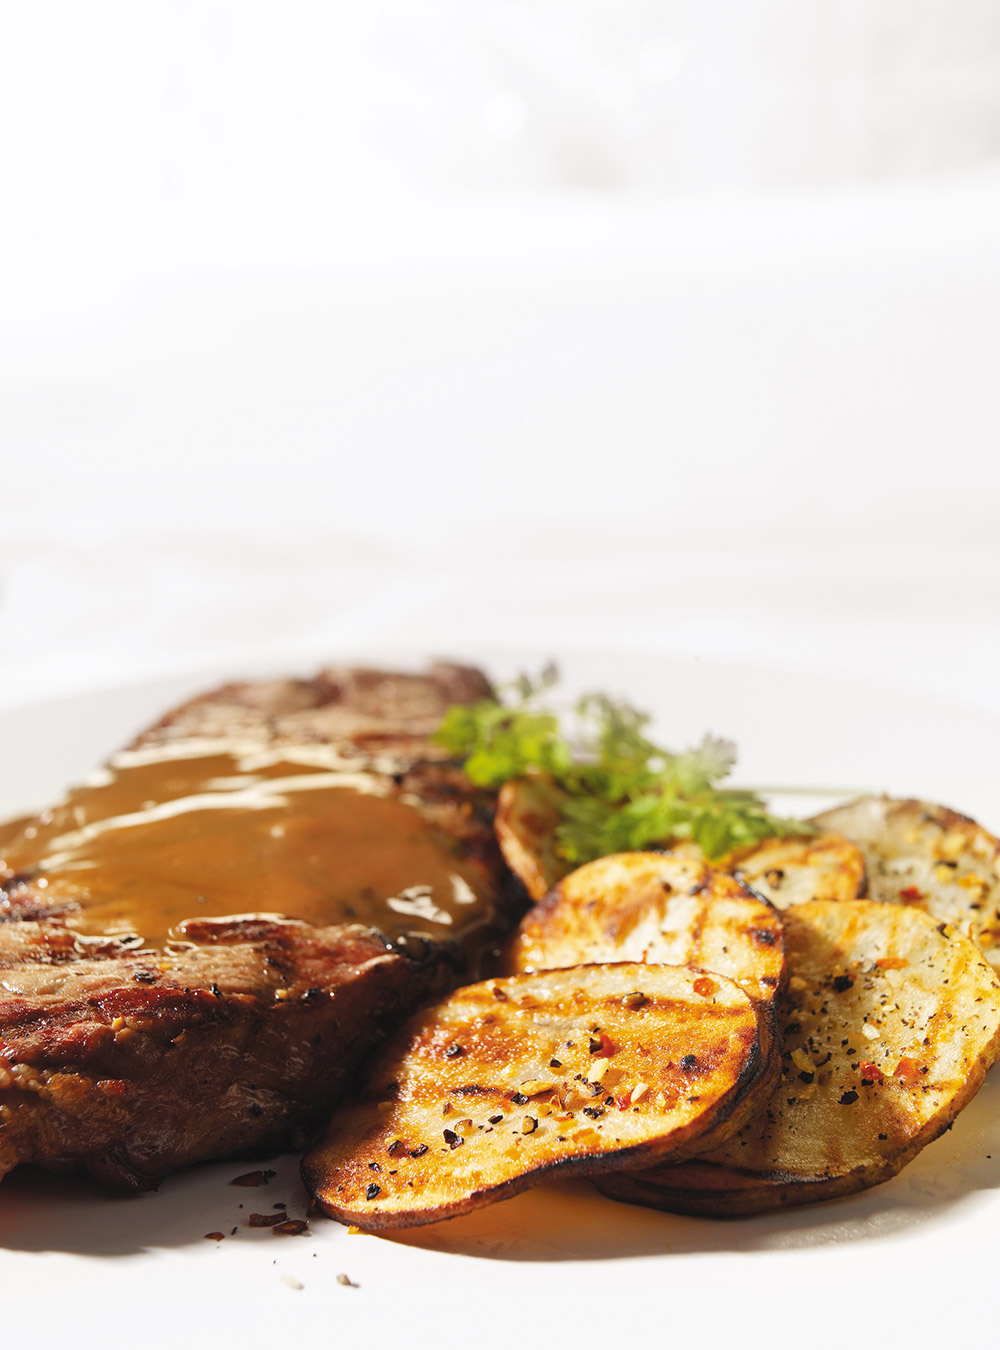 Strip Loin Steaks With Creamy Brown Butter And Balsamic Sauce Ricardo